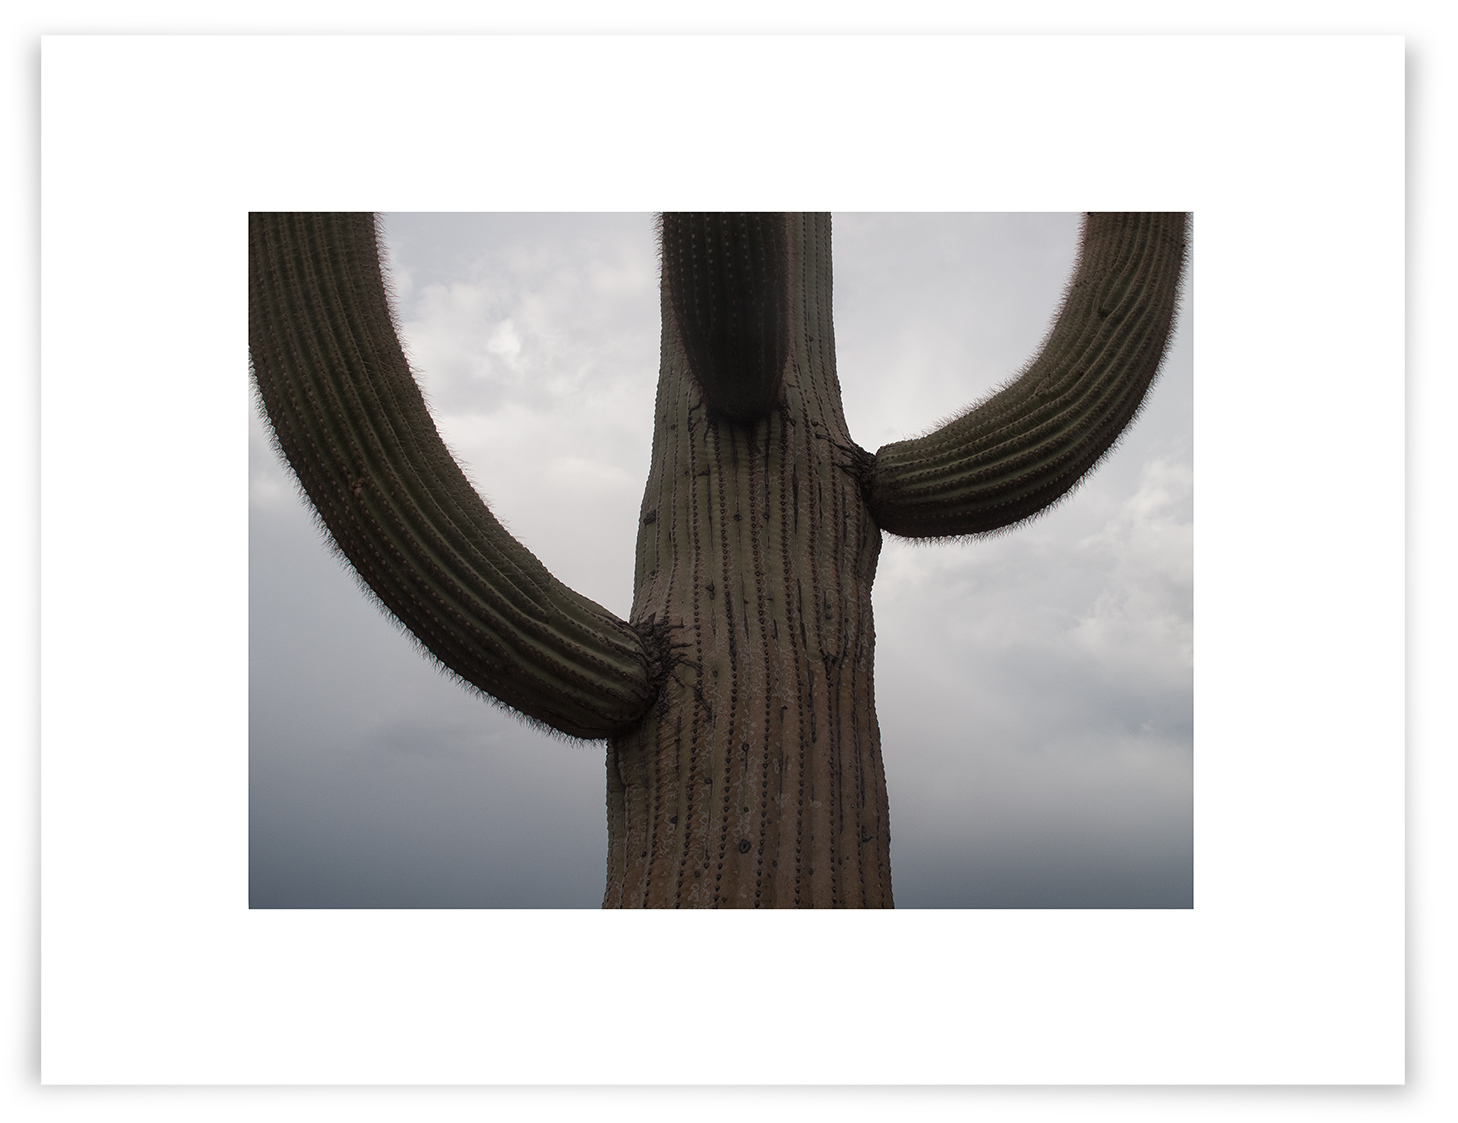 The Tom Thumb Saguaro (CG10 130804)   18 x 24 in (46 x 61 cm)